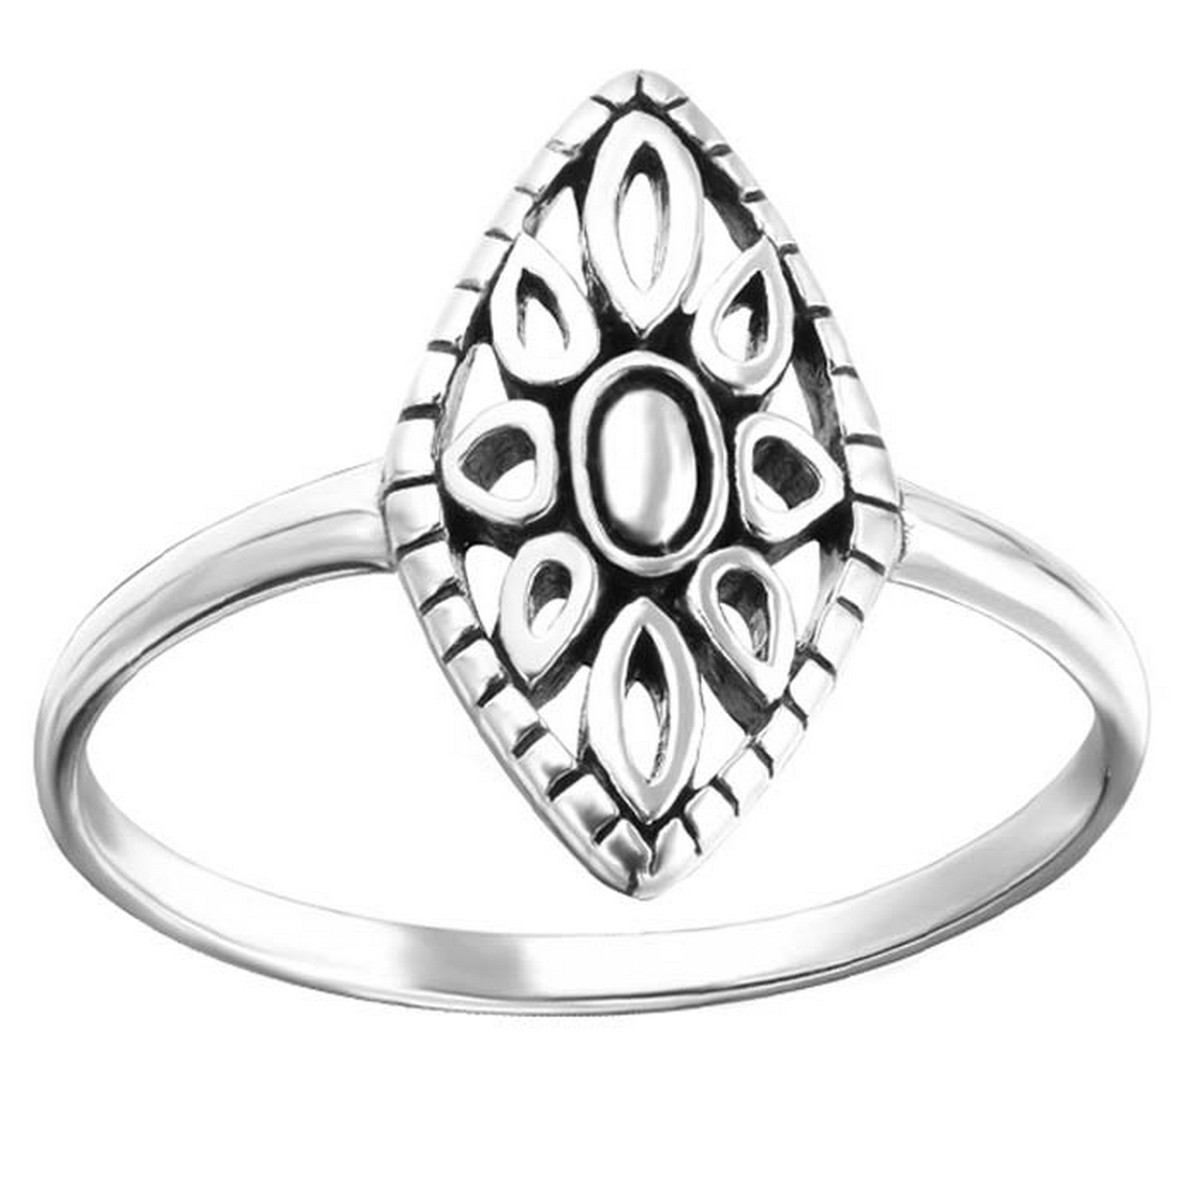 Napua | Ring 925 zilver